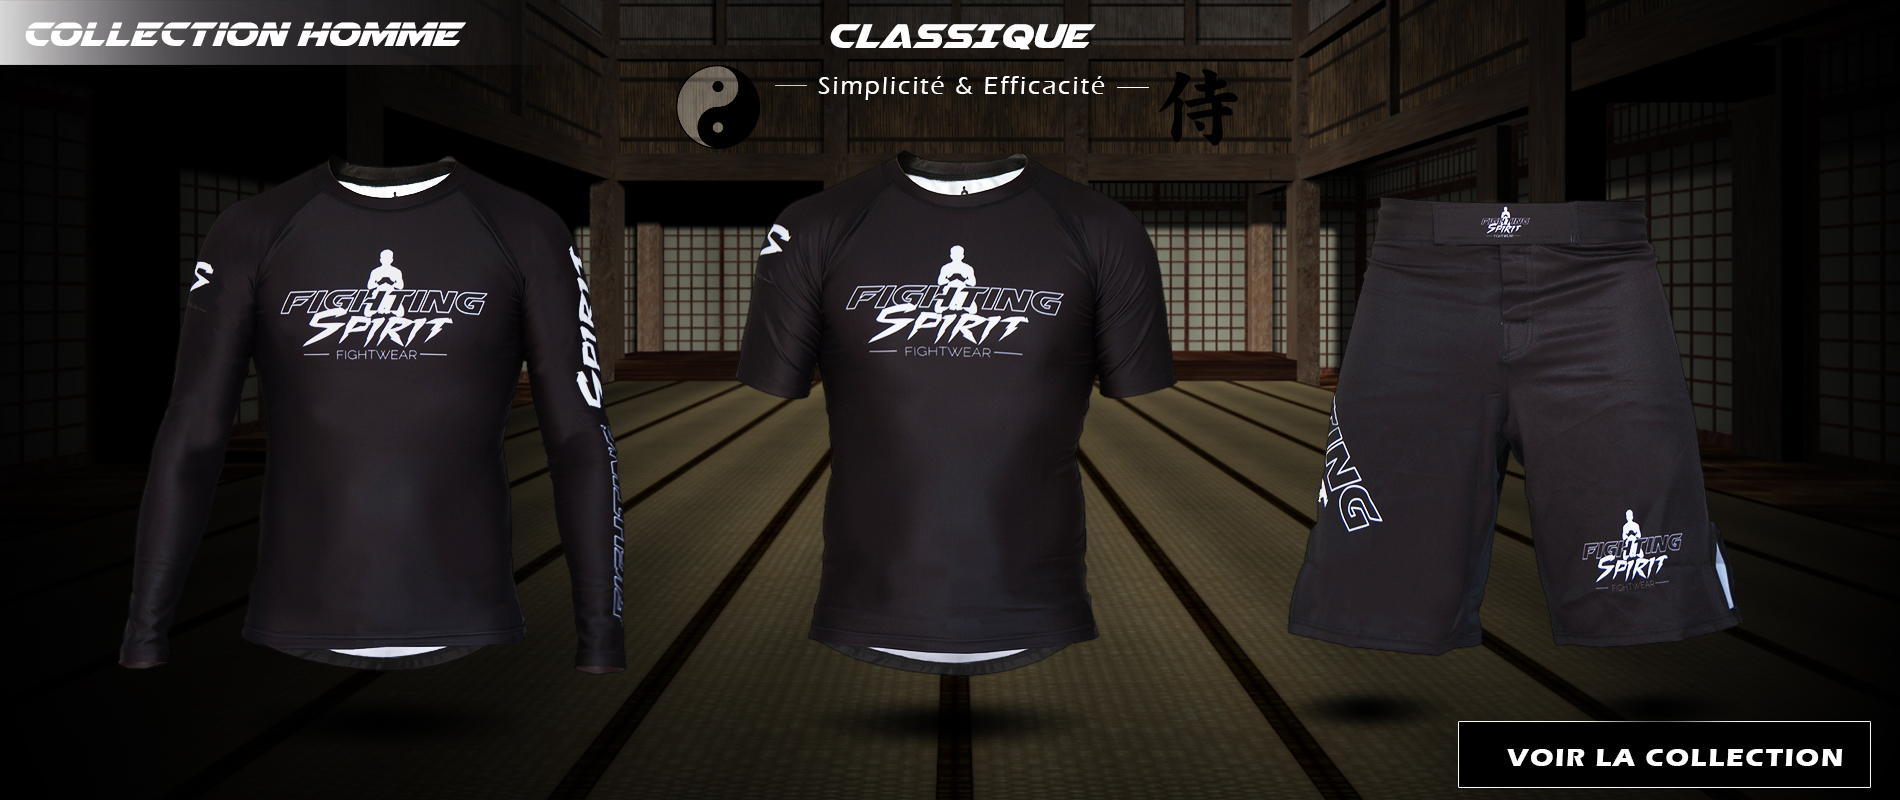 Collection classique homme FIGHTING SPIRIT